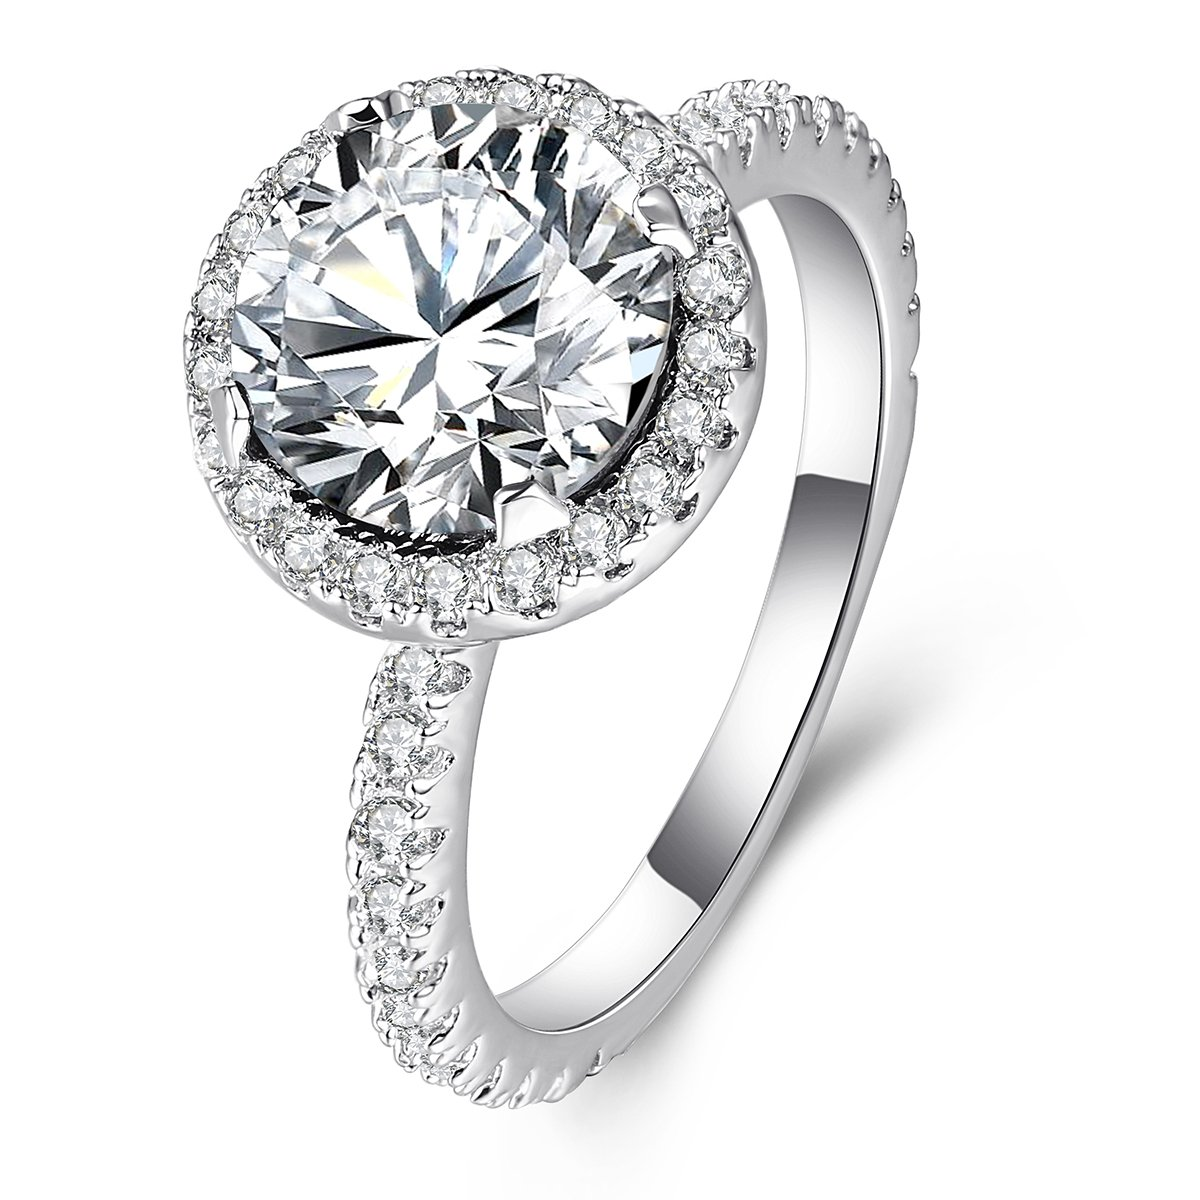 3 Carat Round CZ Solitaire Ring for Women White Gold Plated, Halo Style Shining Jewelry Gifts for Her Size 5-10 Shengtai ST324Z